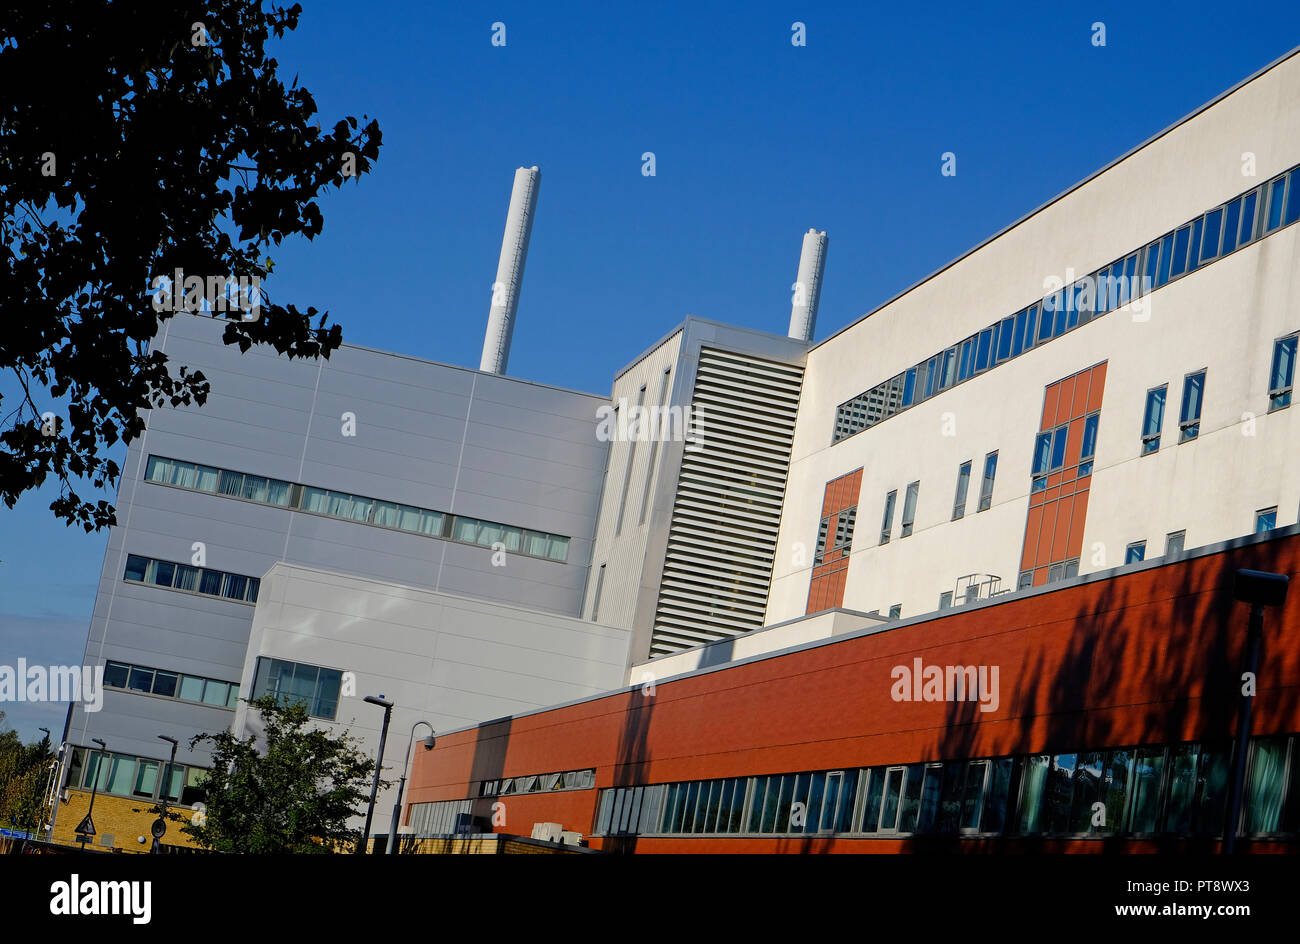 addenbrooke's, cambridge university hospital, england - Stock Image